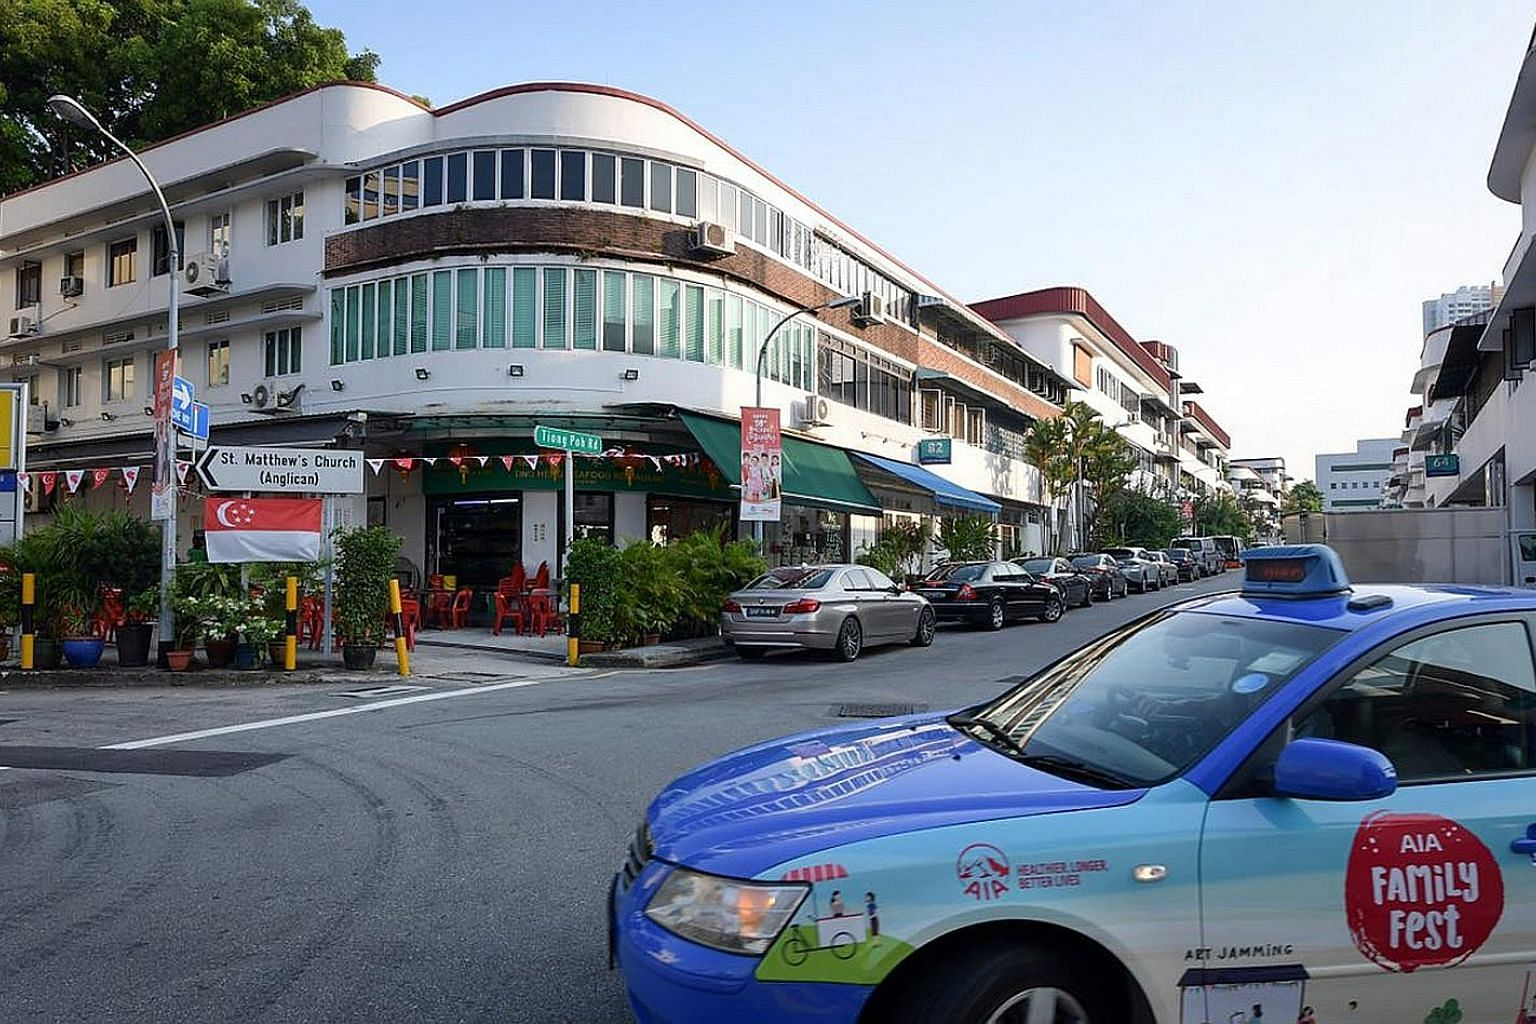 Ting Heng Seafood Restaurant in Tiong Bahru is among the businesses that will benefit from the URA rezoning of residential units in the area. The change to commercial use becomes official next month.